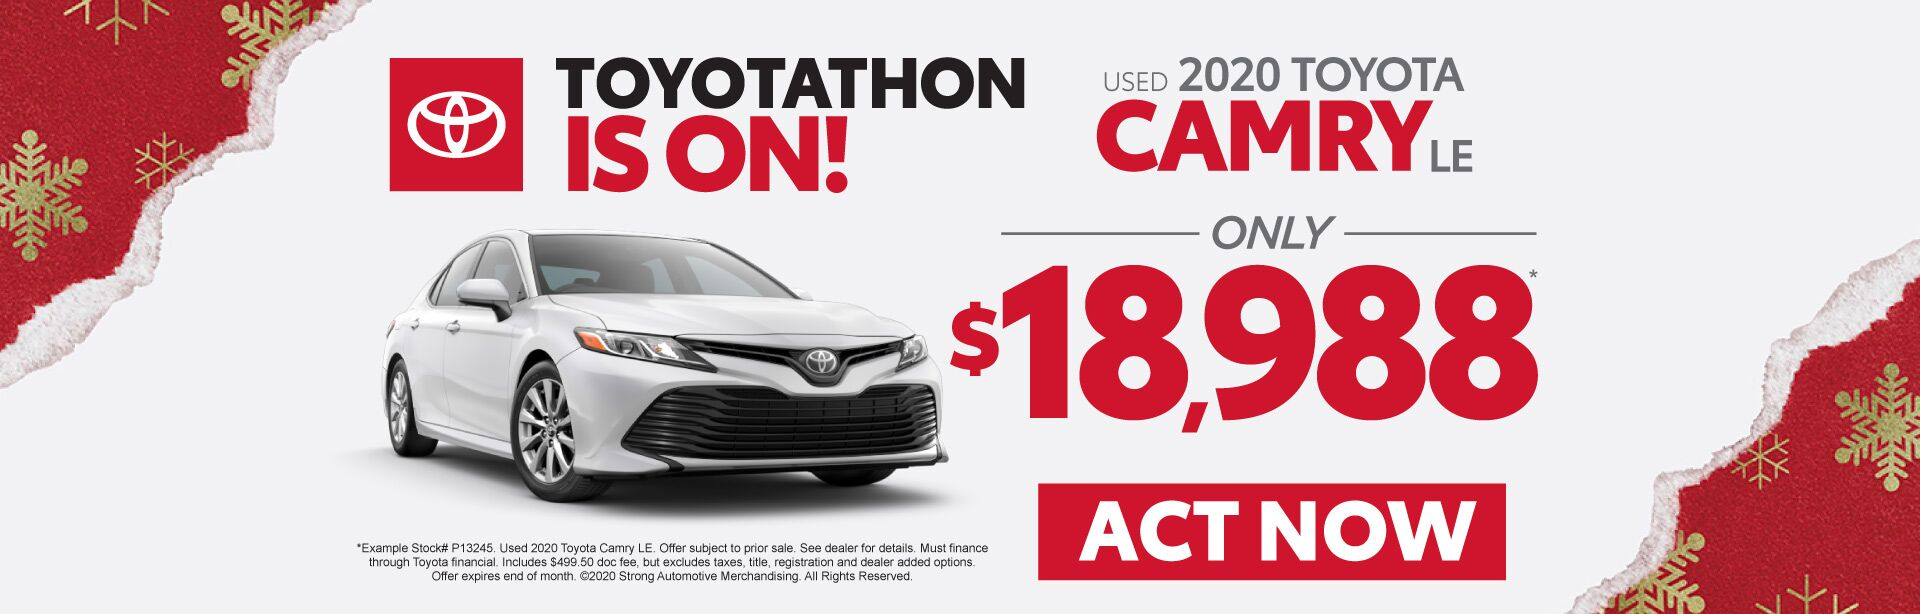 Used 2020 Toyota Camry - Only $18,988